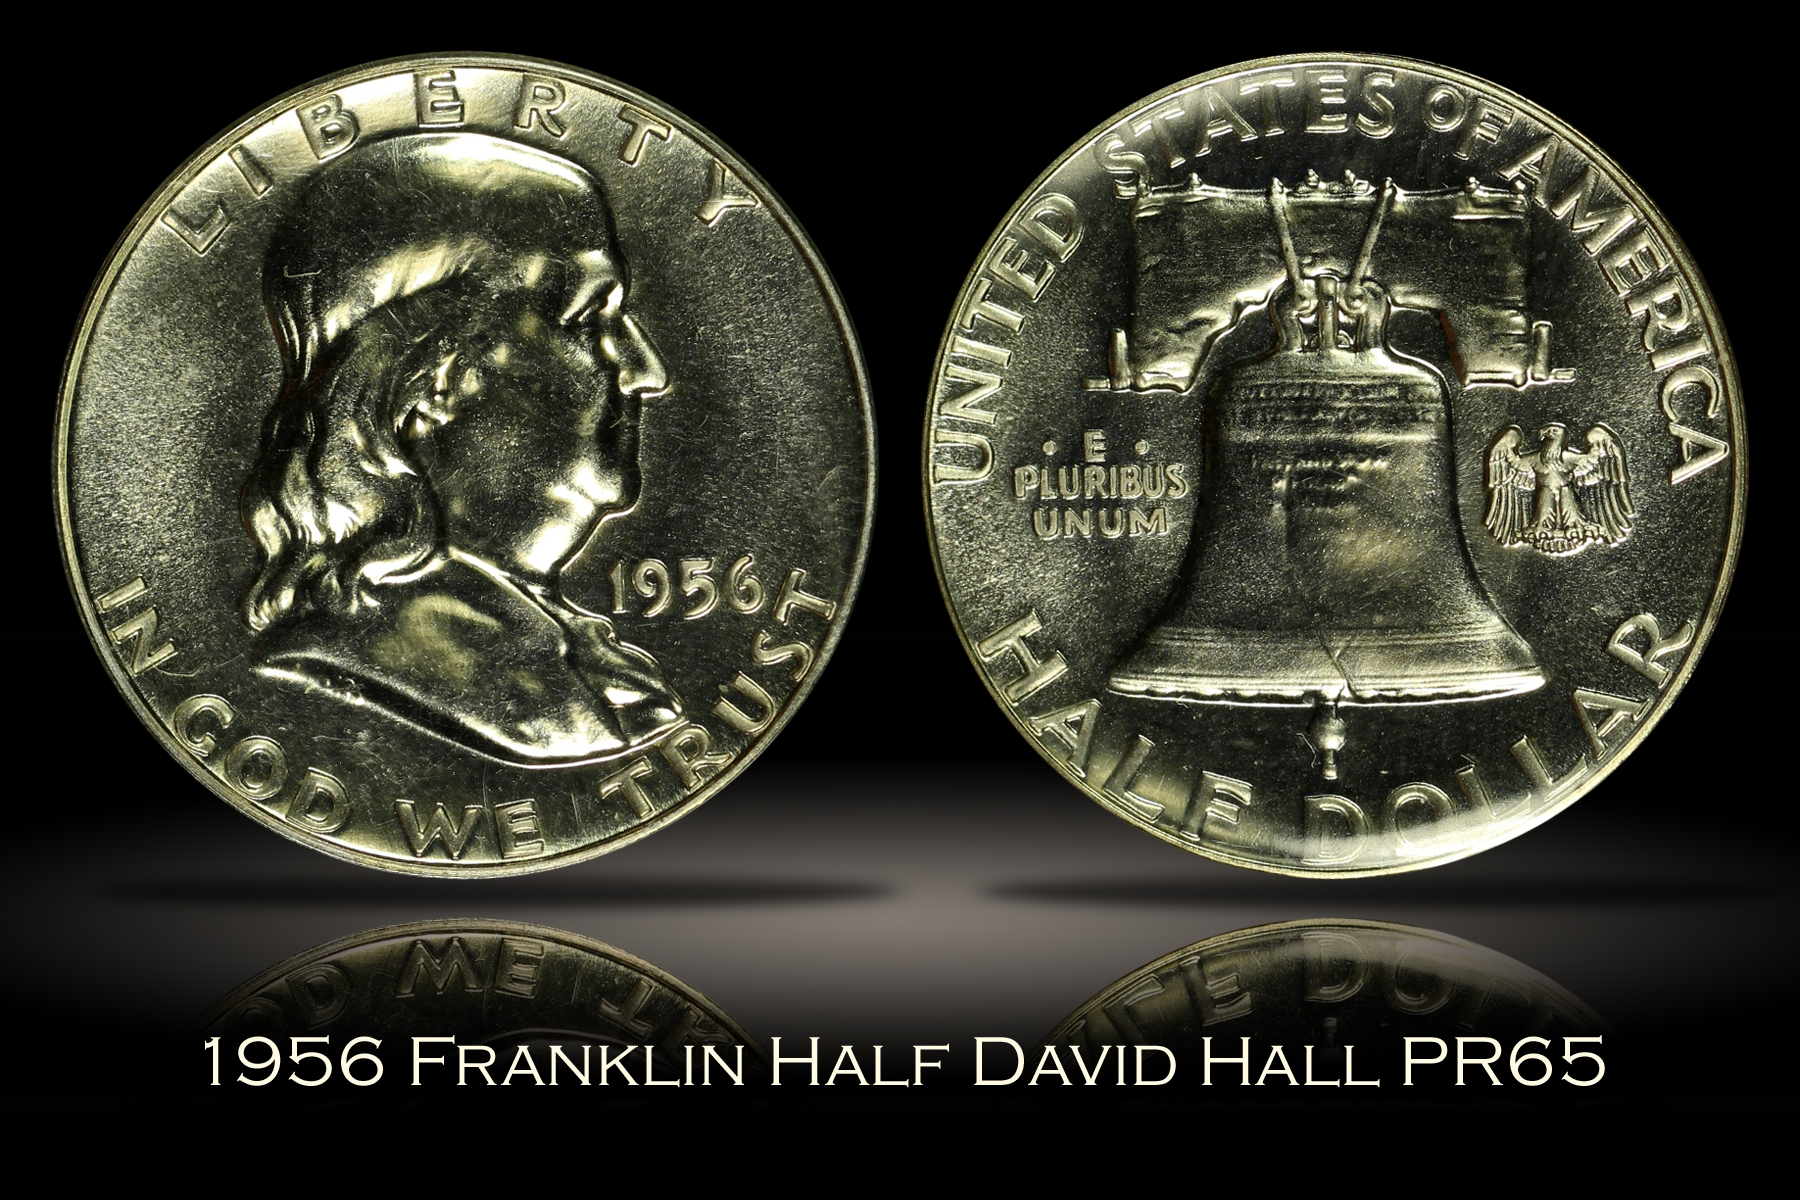 1956 Proof Franklin Half David Hall's Numismatic Investment Group PR65